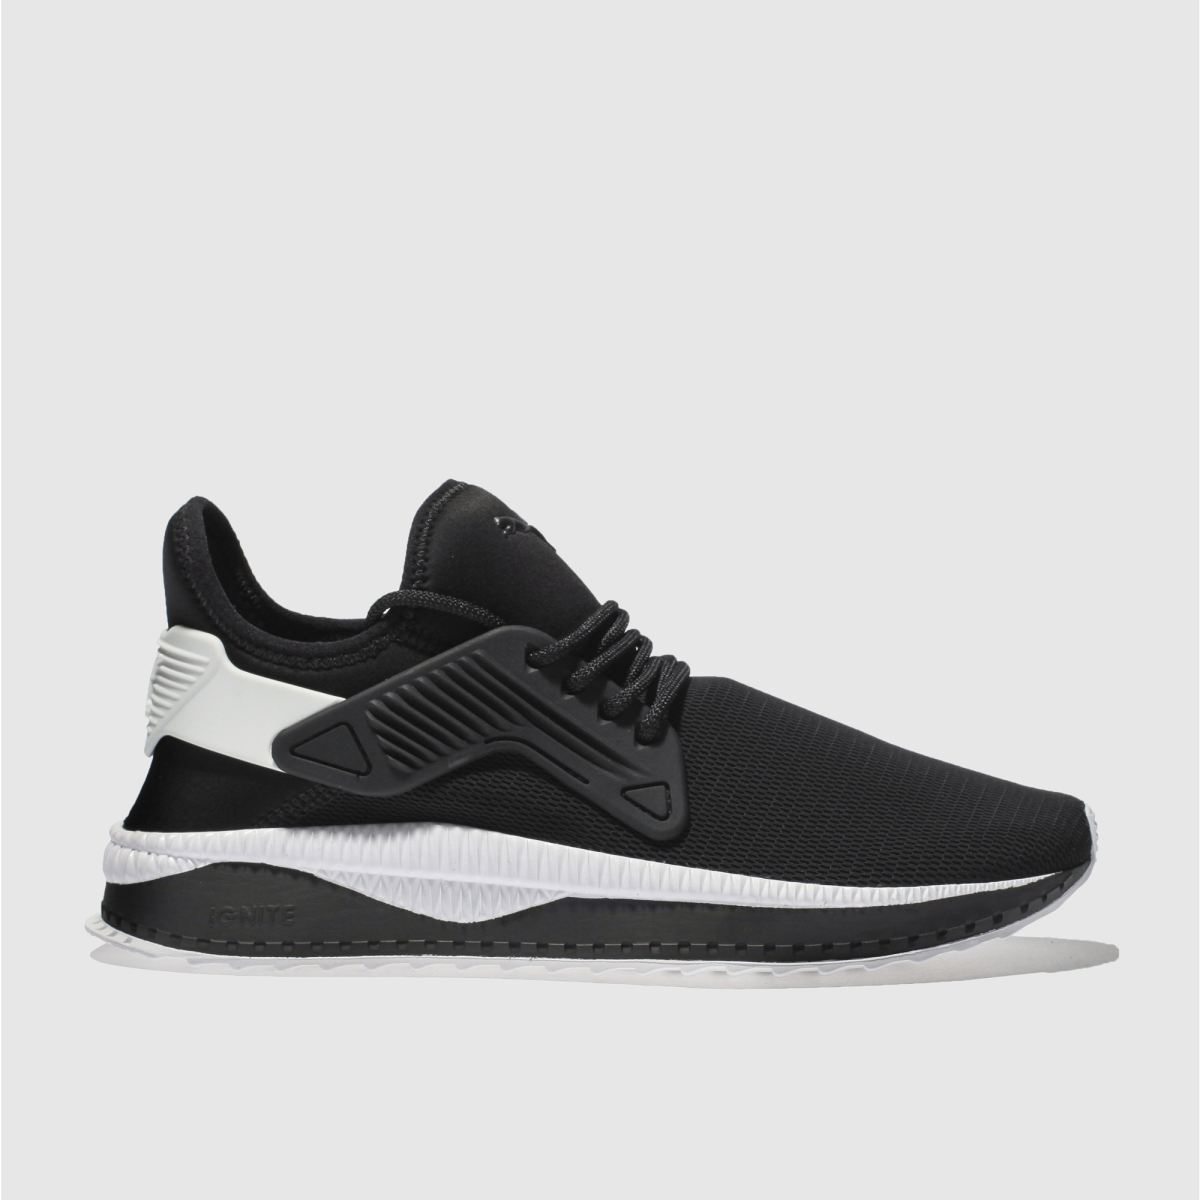 Puma Black & White Tsugi Cage Trainers